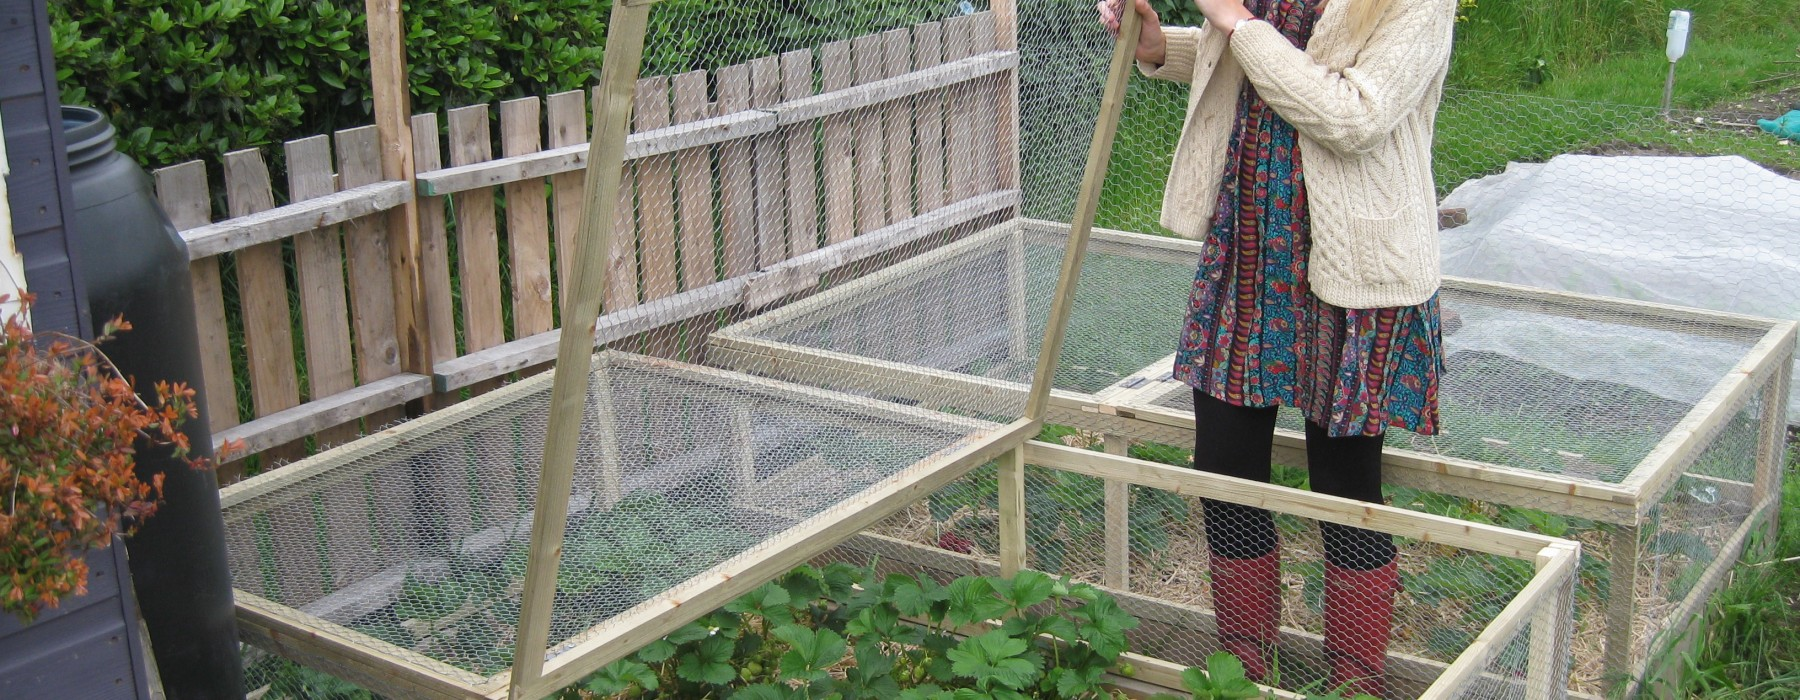 New Strawberry Bed Cages! | Lavender and Leeks | Lavender and Leeks